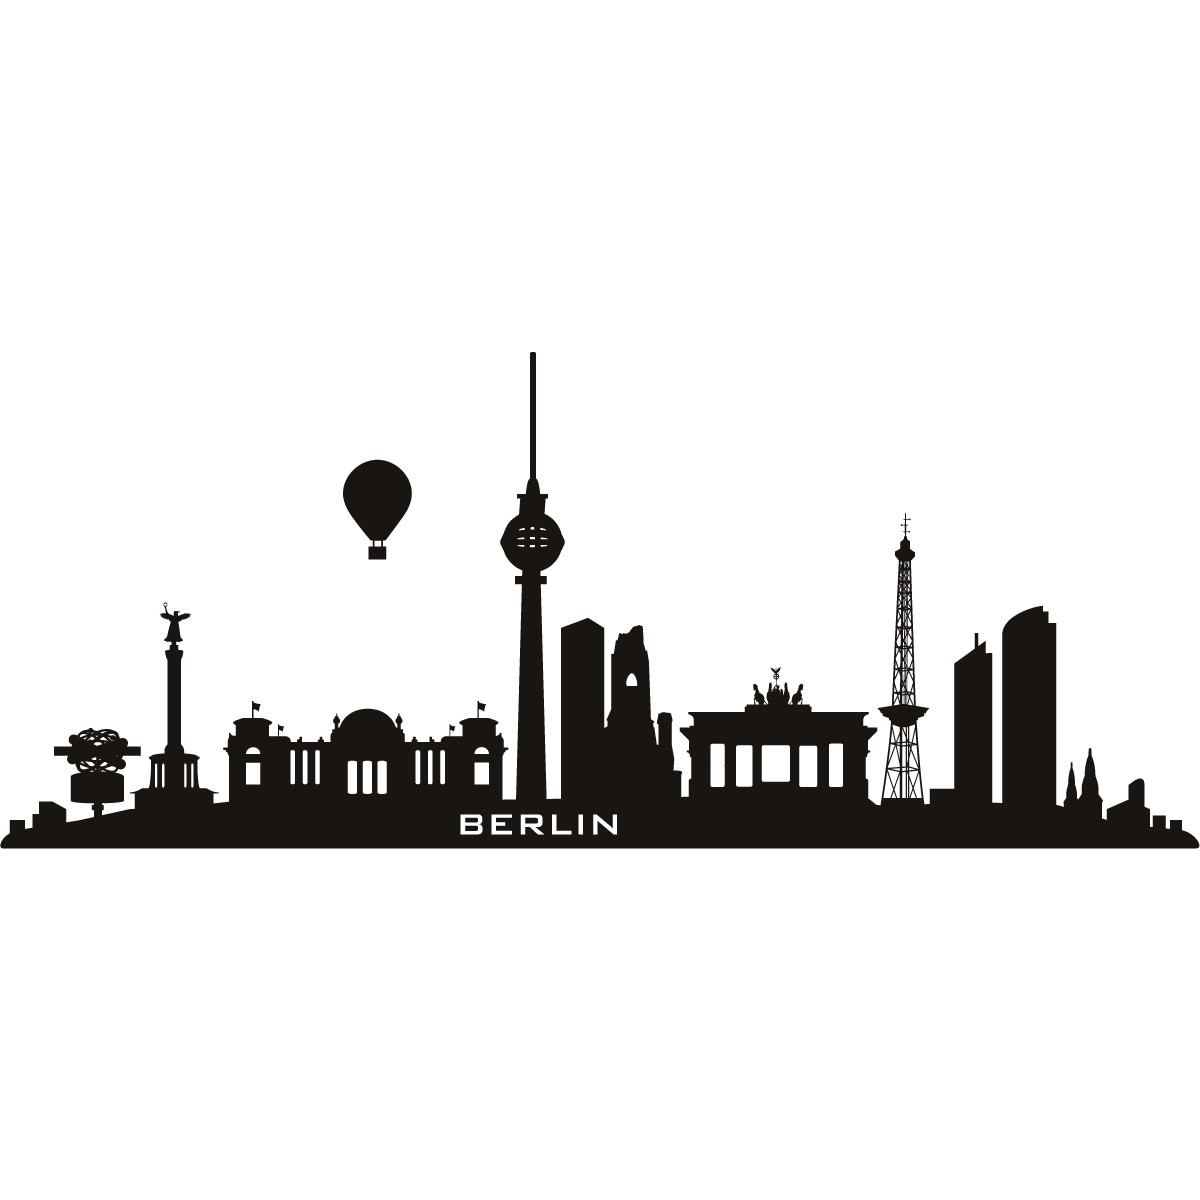 Berlin Germany Skyline Cities Wall Art Decal Wall Stickers 02 Berlin Skyline Berlin Wandkunst